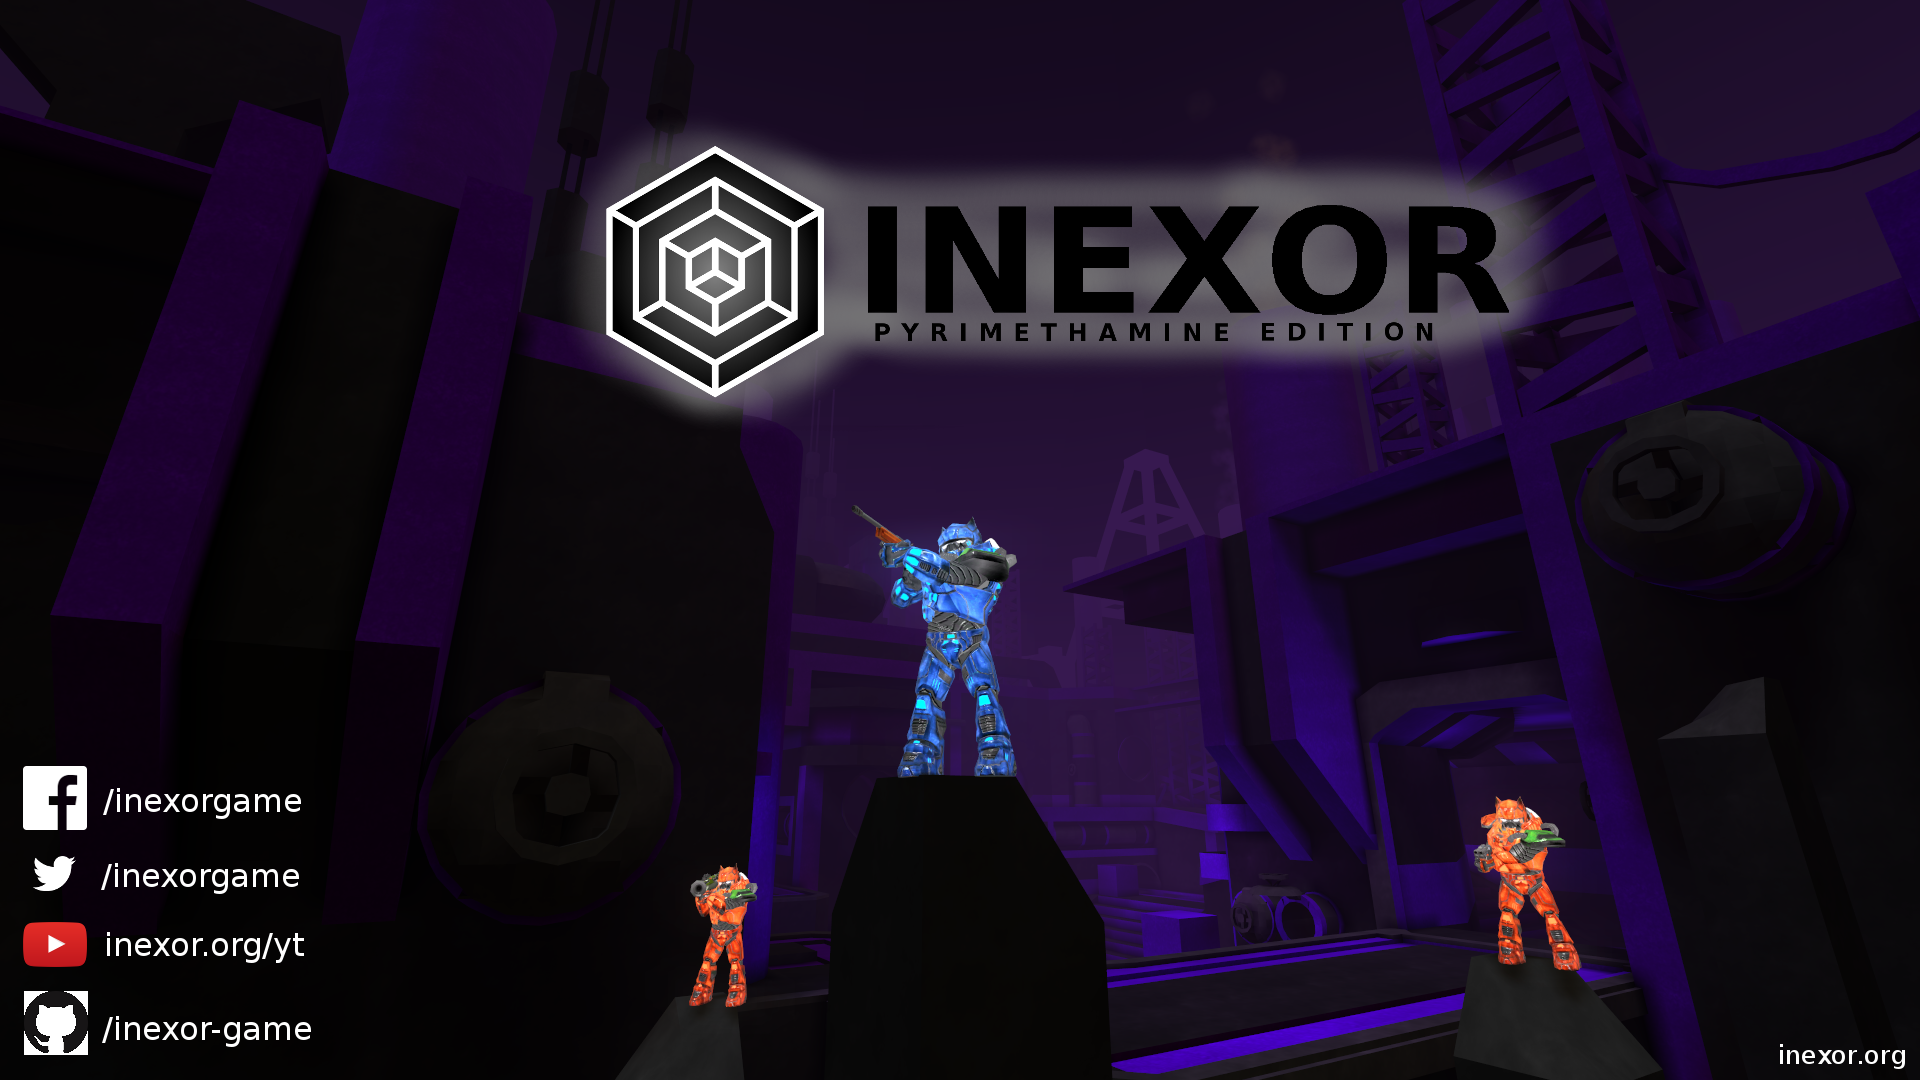 Inexor Pyrimethamine Alpha Edition